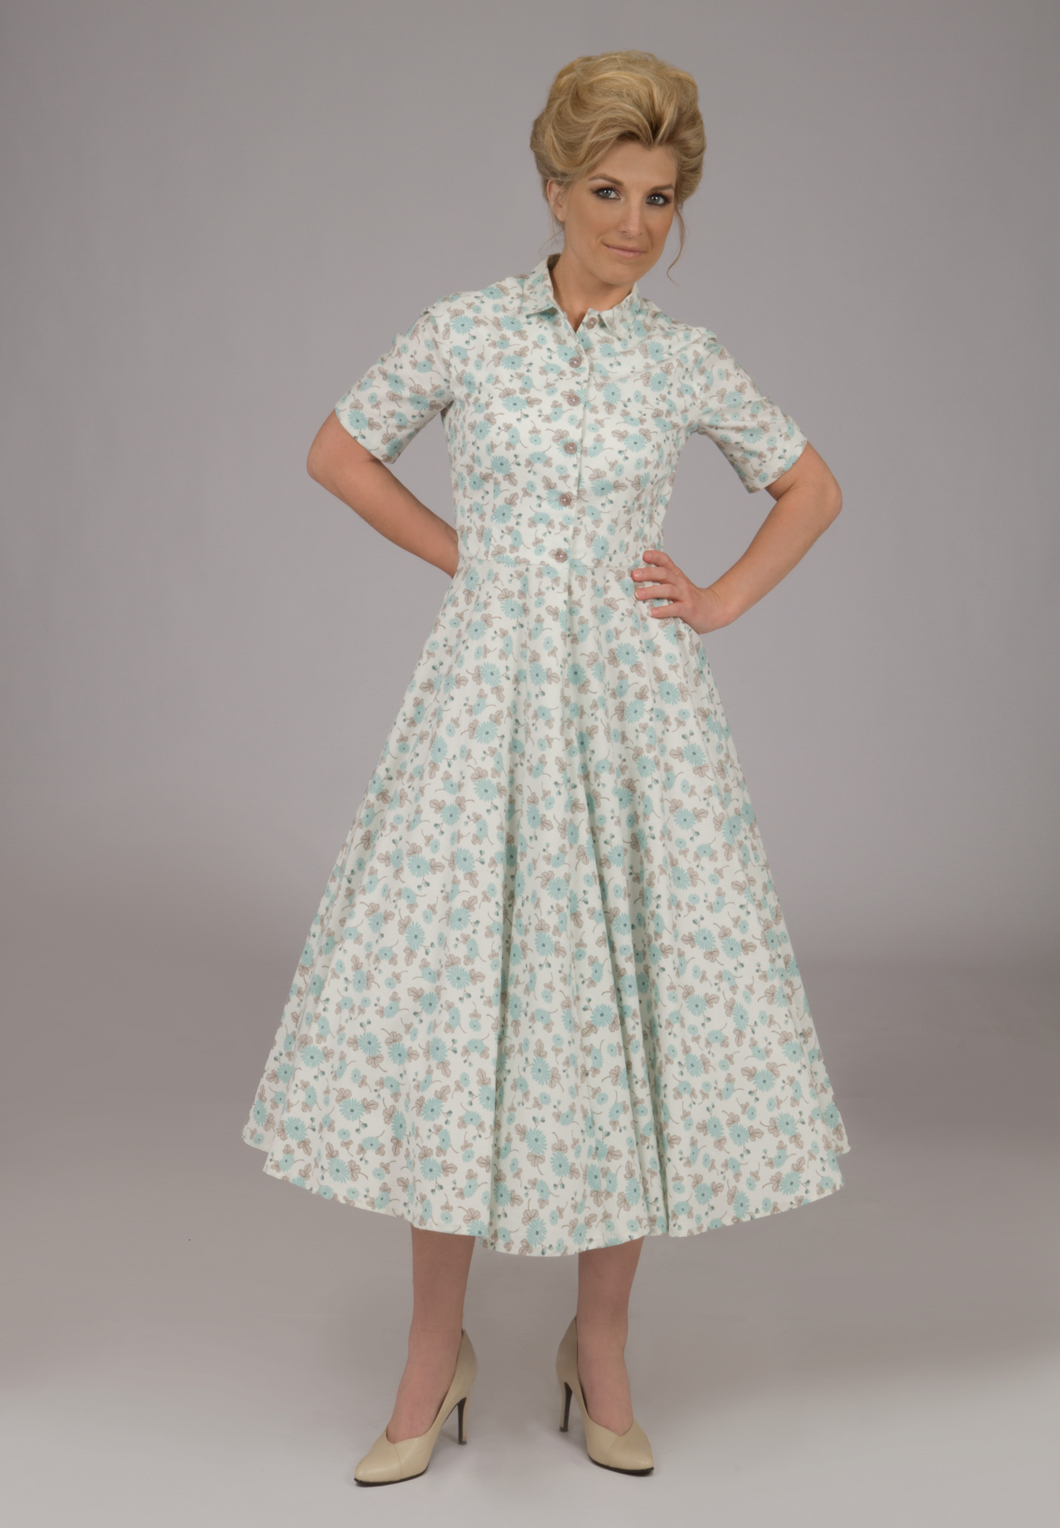 Vera Retro 1950's Dress